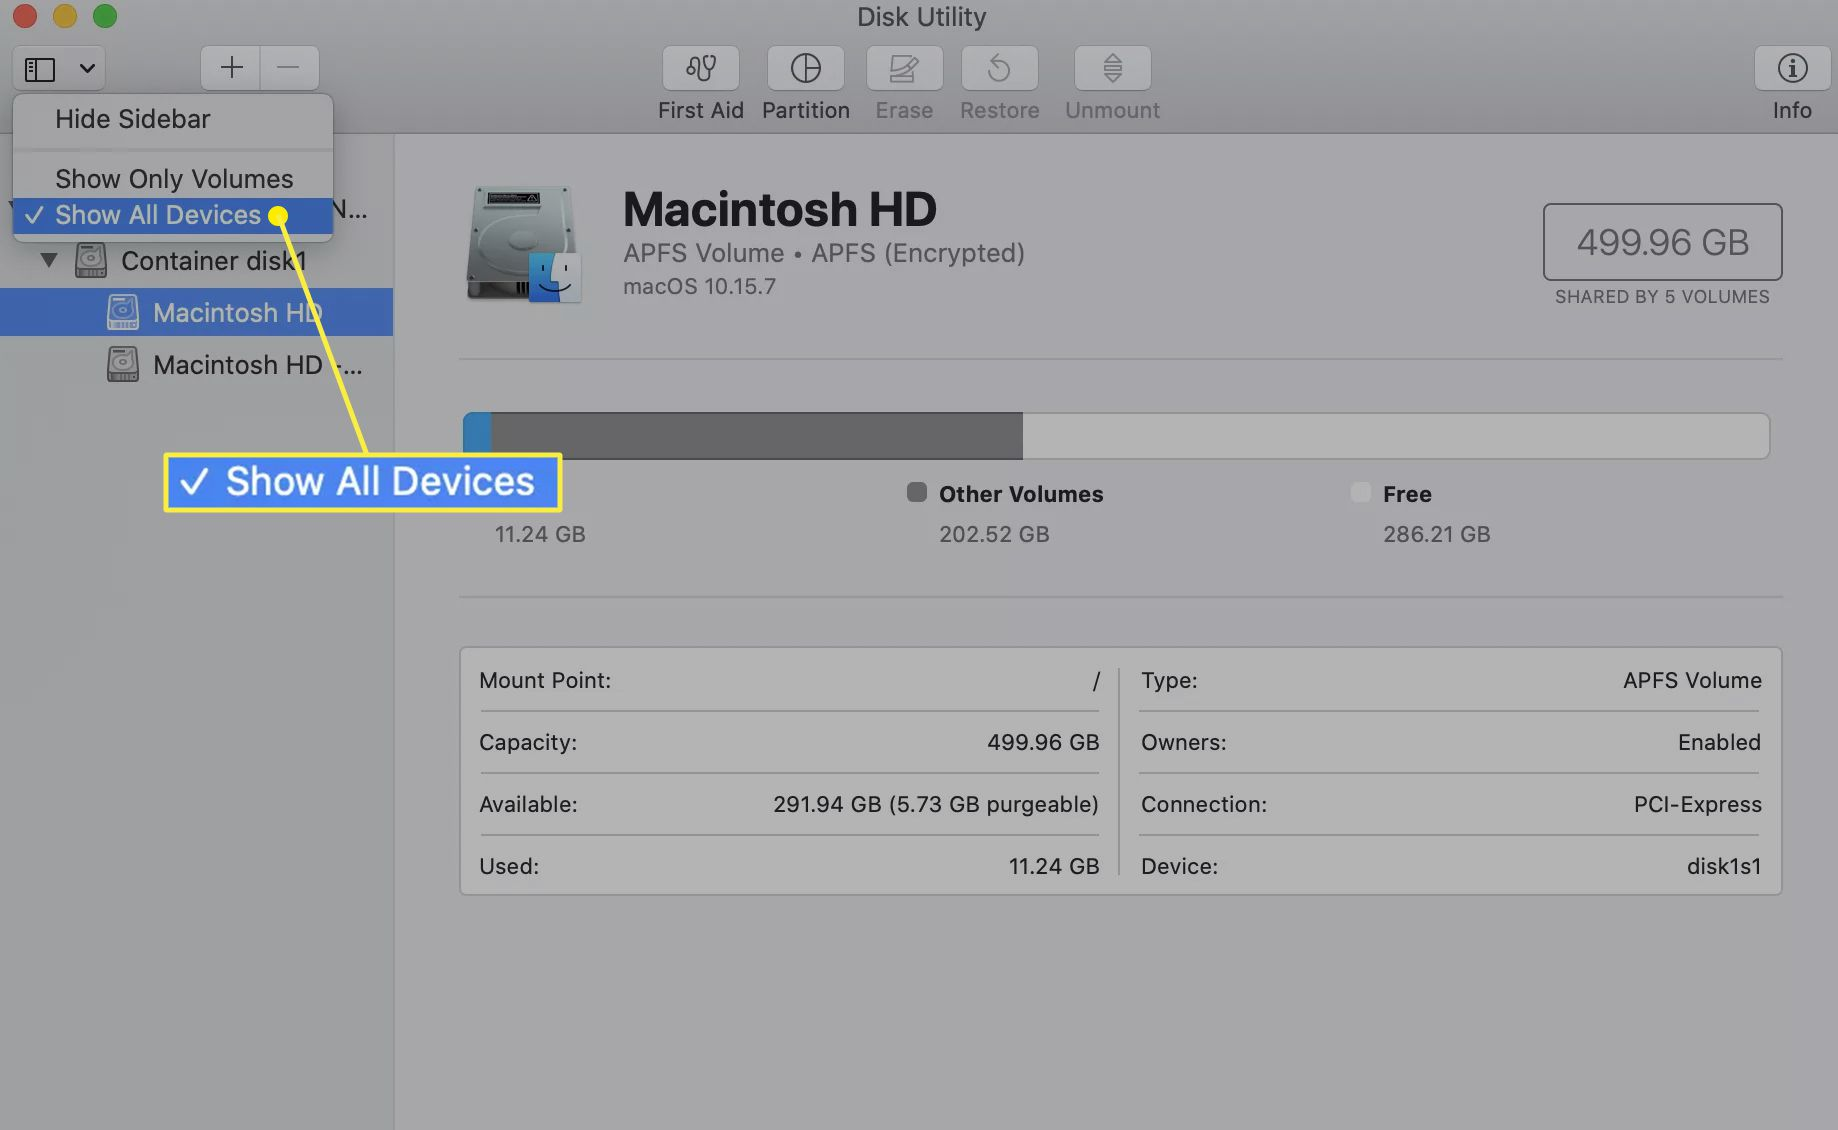 Disk Utility with Show All Devices selected